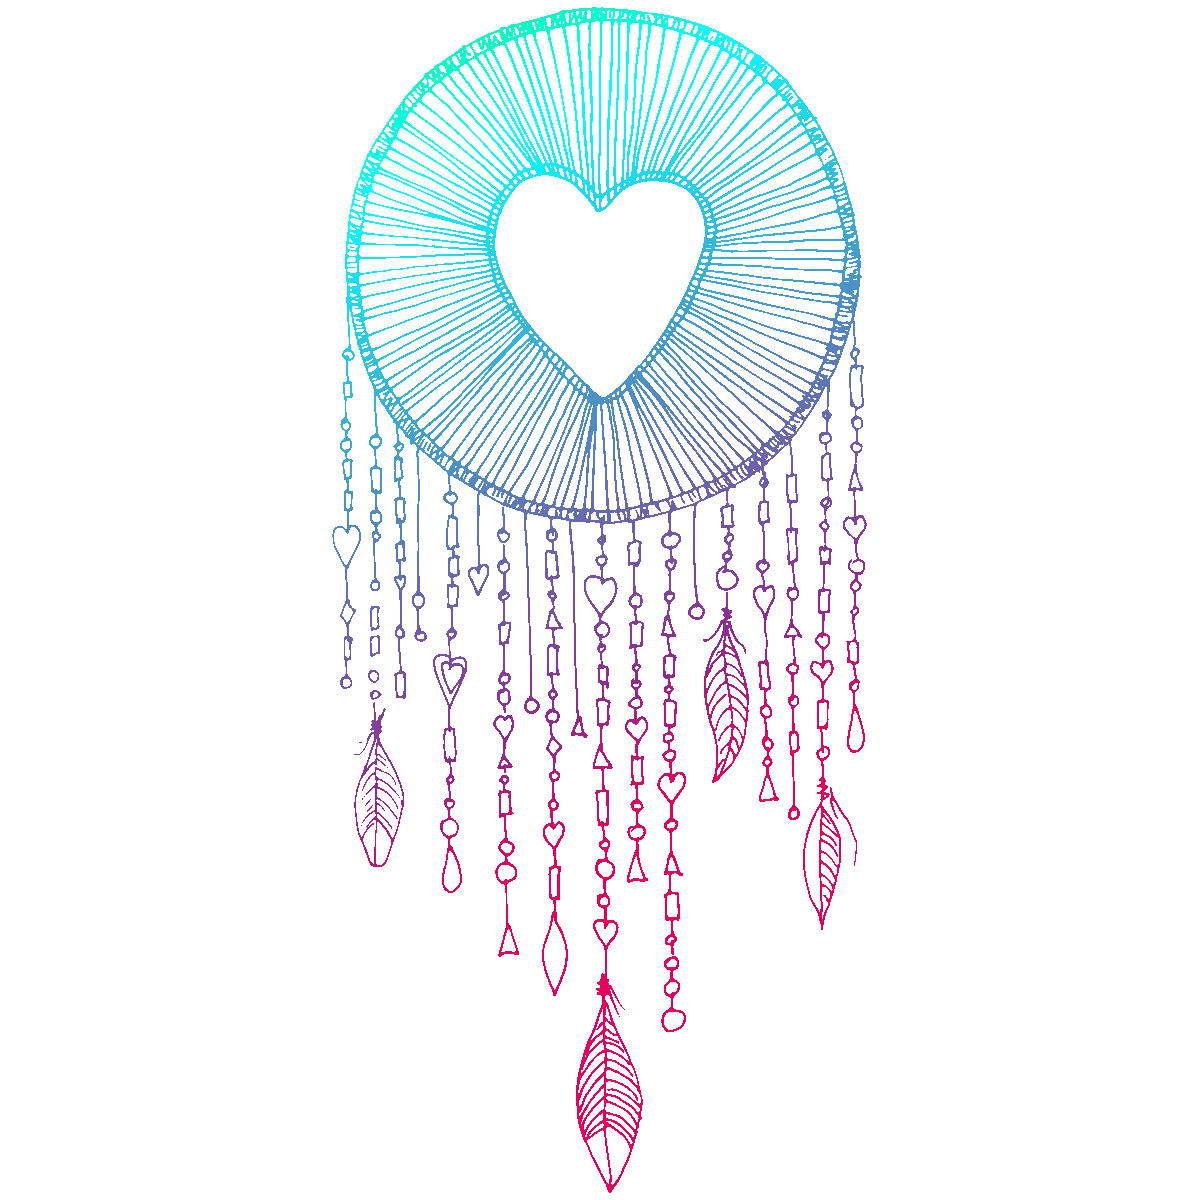 Heart Symbol Drawing Dreamcatcher PNG Free Photo PNG Image